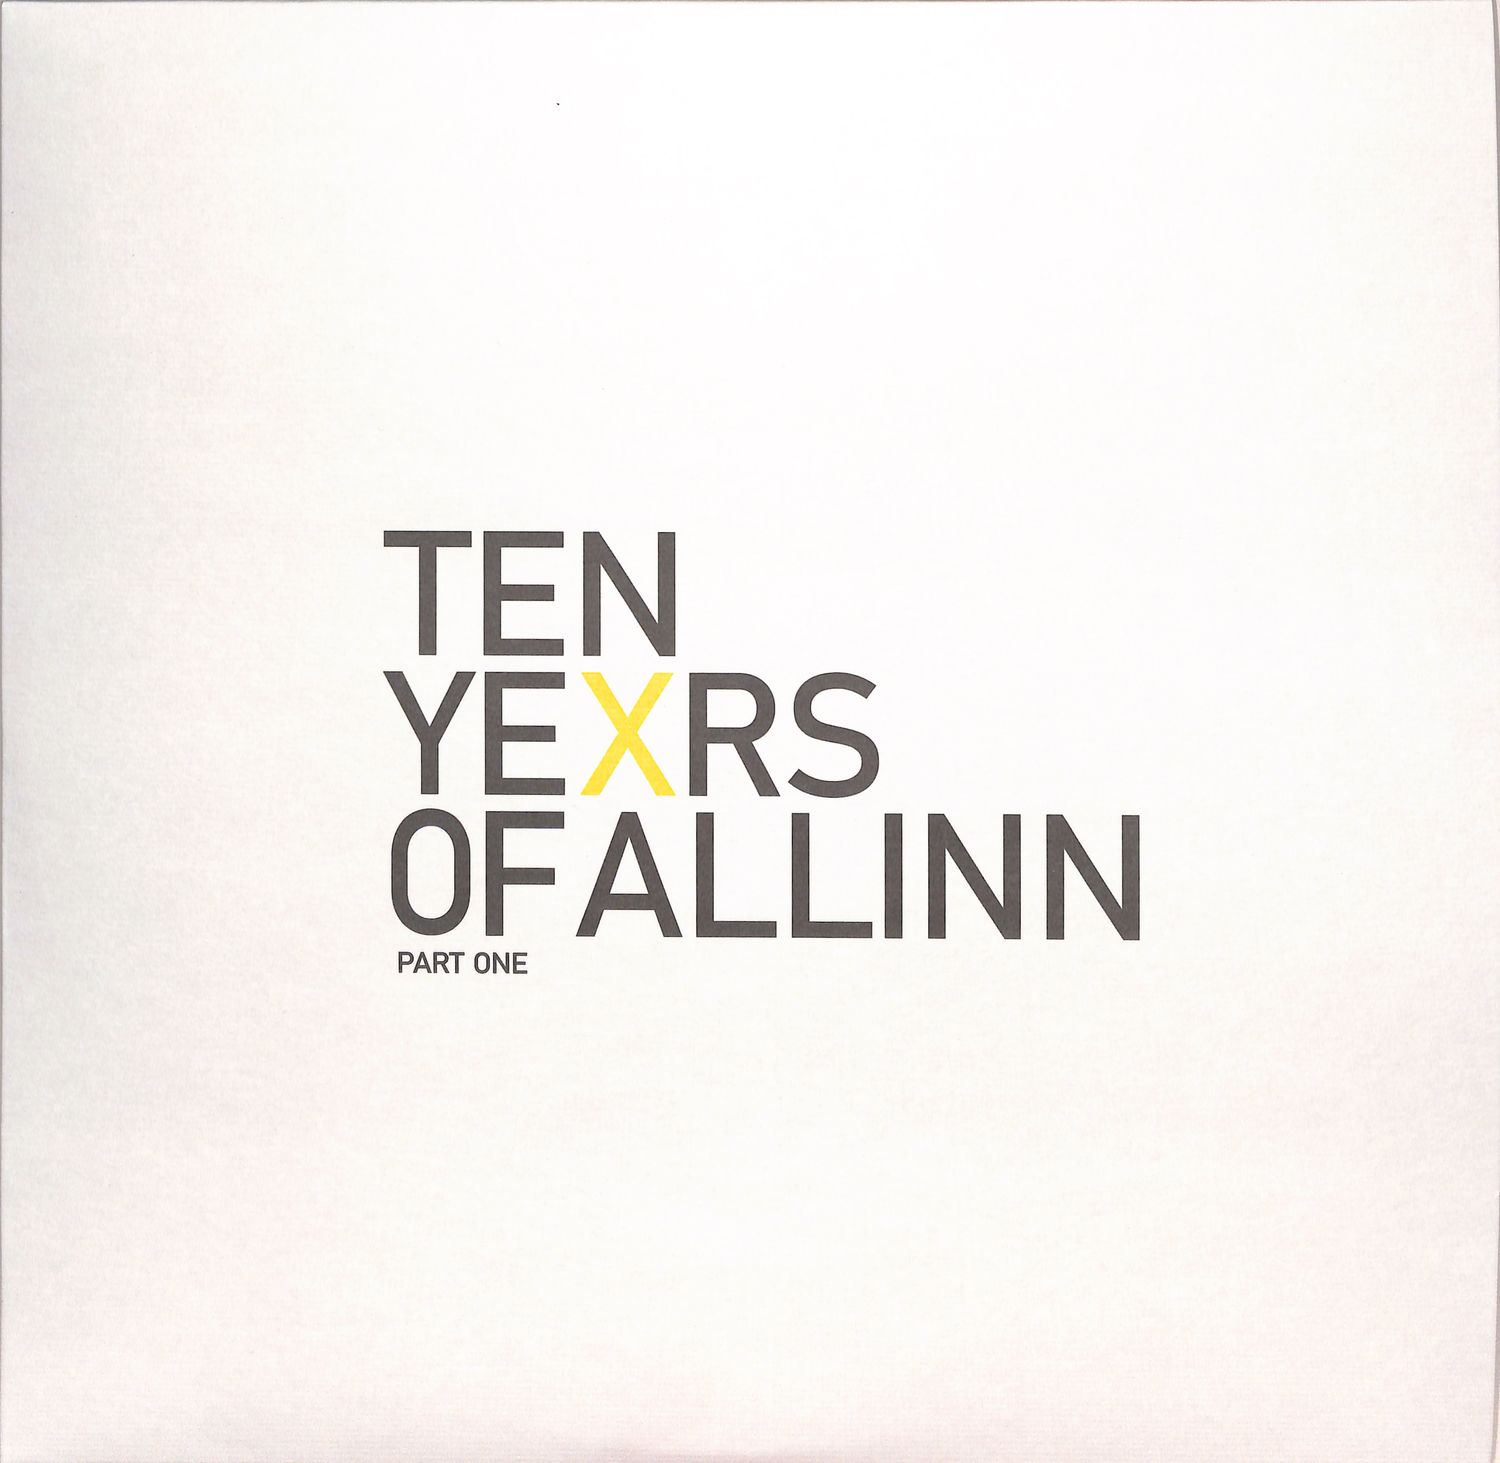 Various Artists - TEN YEXRS OF ALL INN - PART ONE